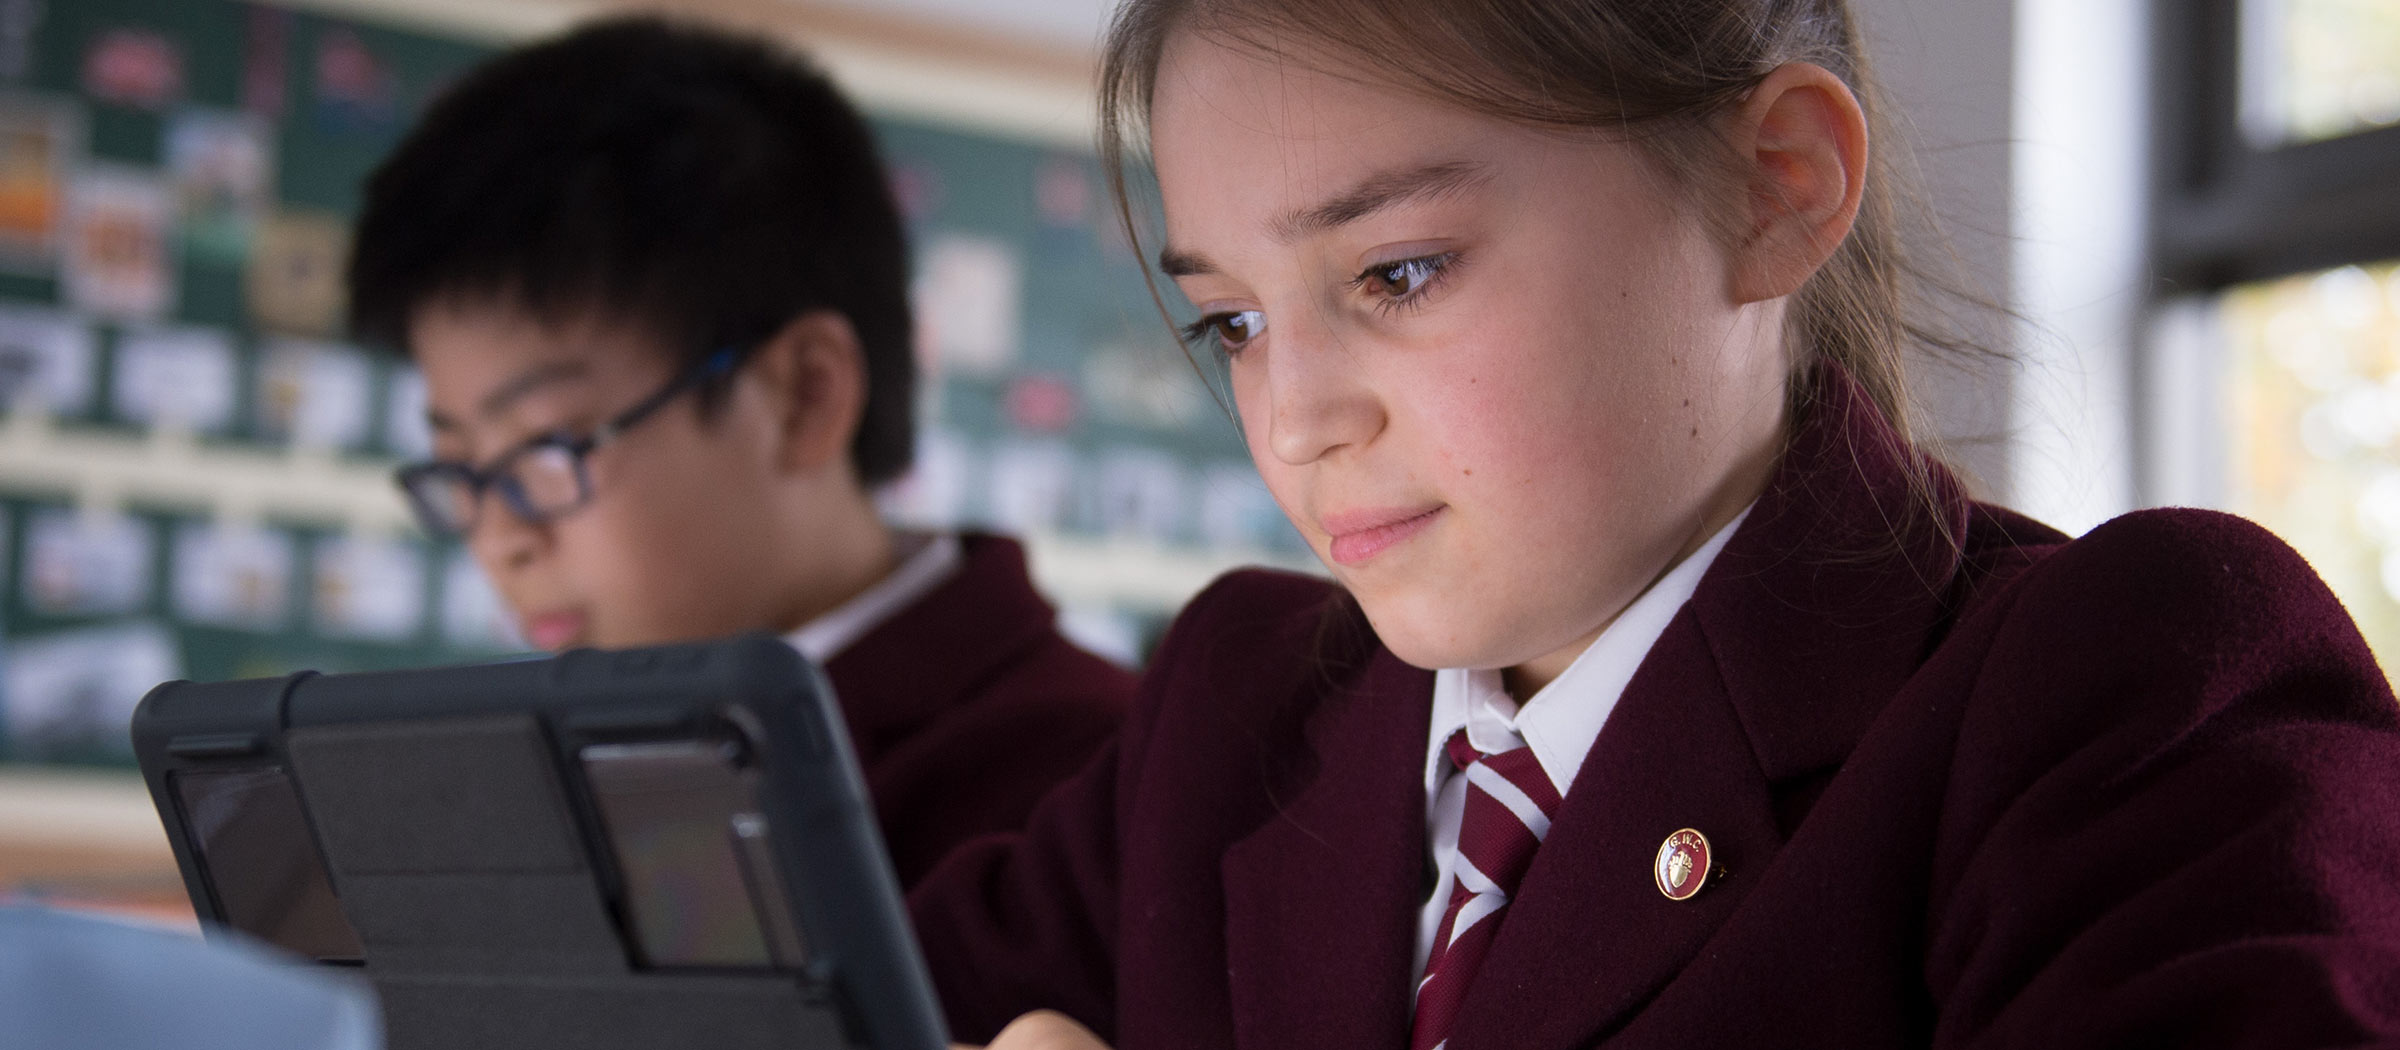 Girl and boy looking at screens in a classroom